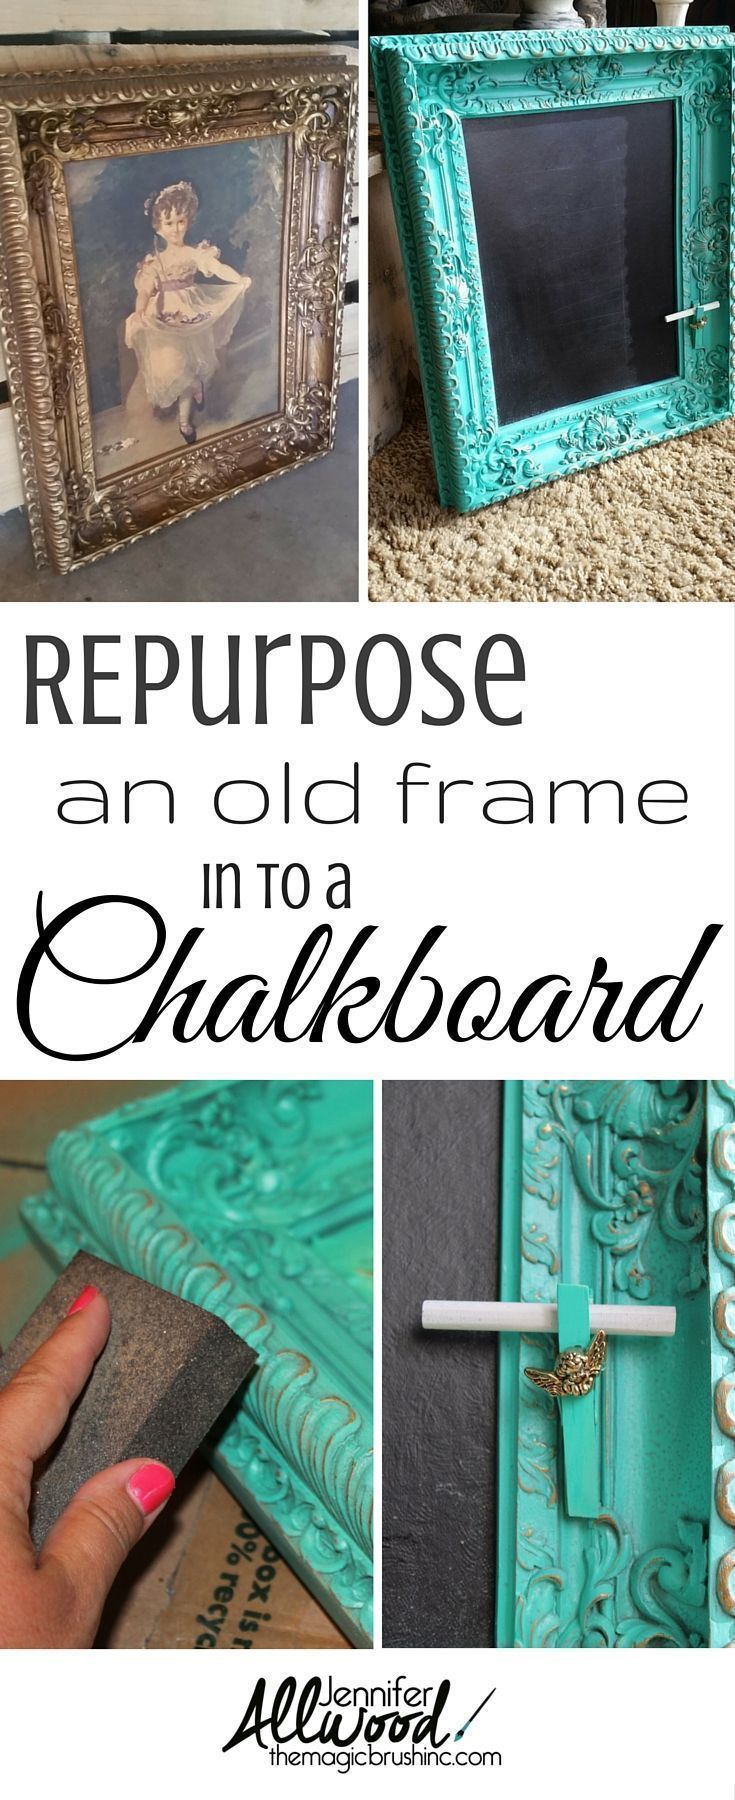 How to make a chalkboard from an old framed print